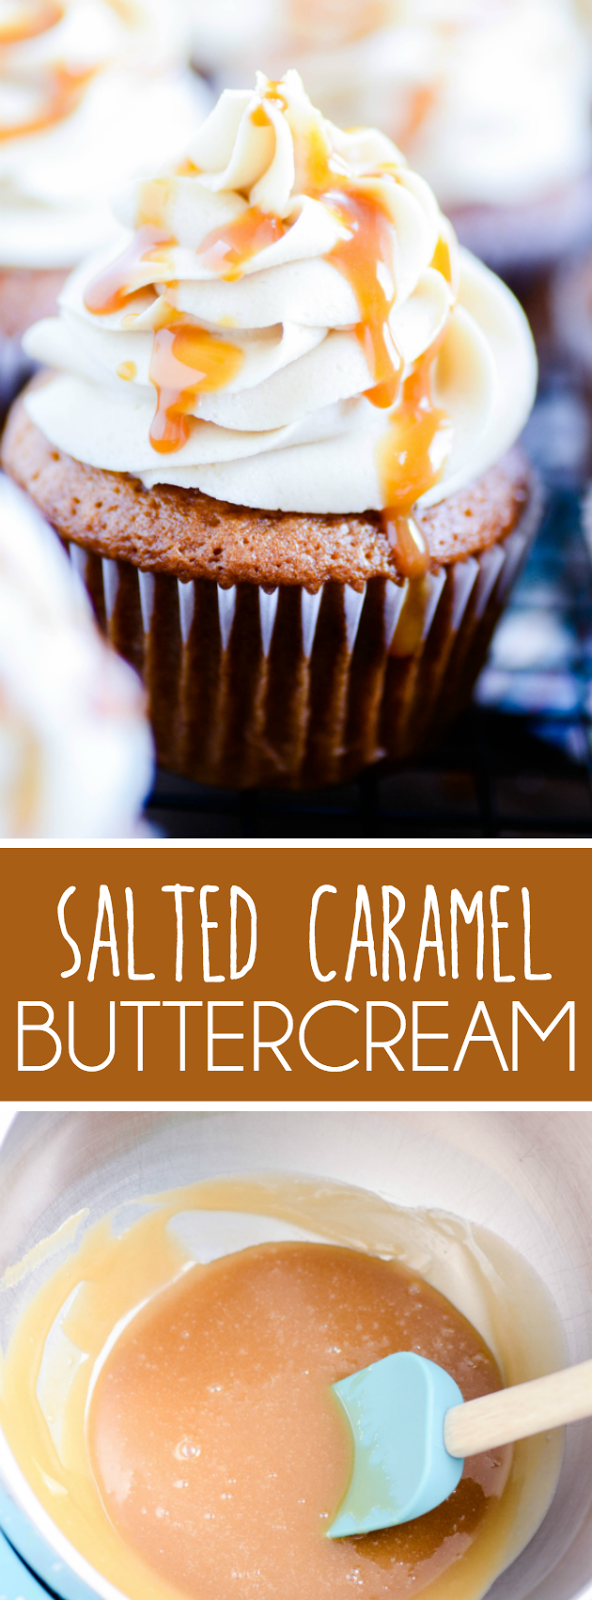 The most perfect caramel frosting of all time. Easy to make and easier to eat!